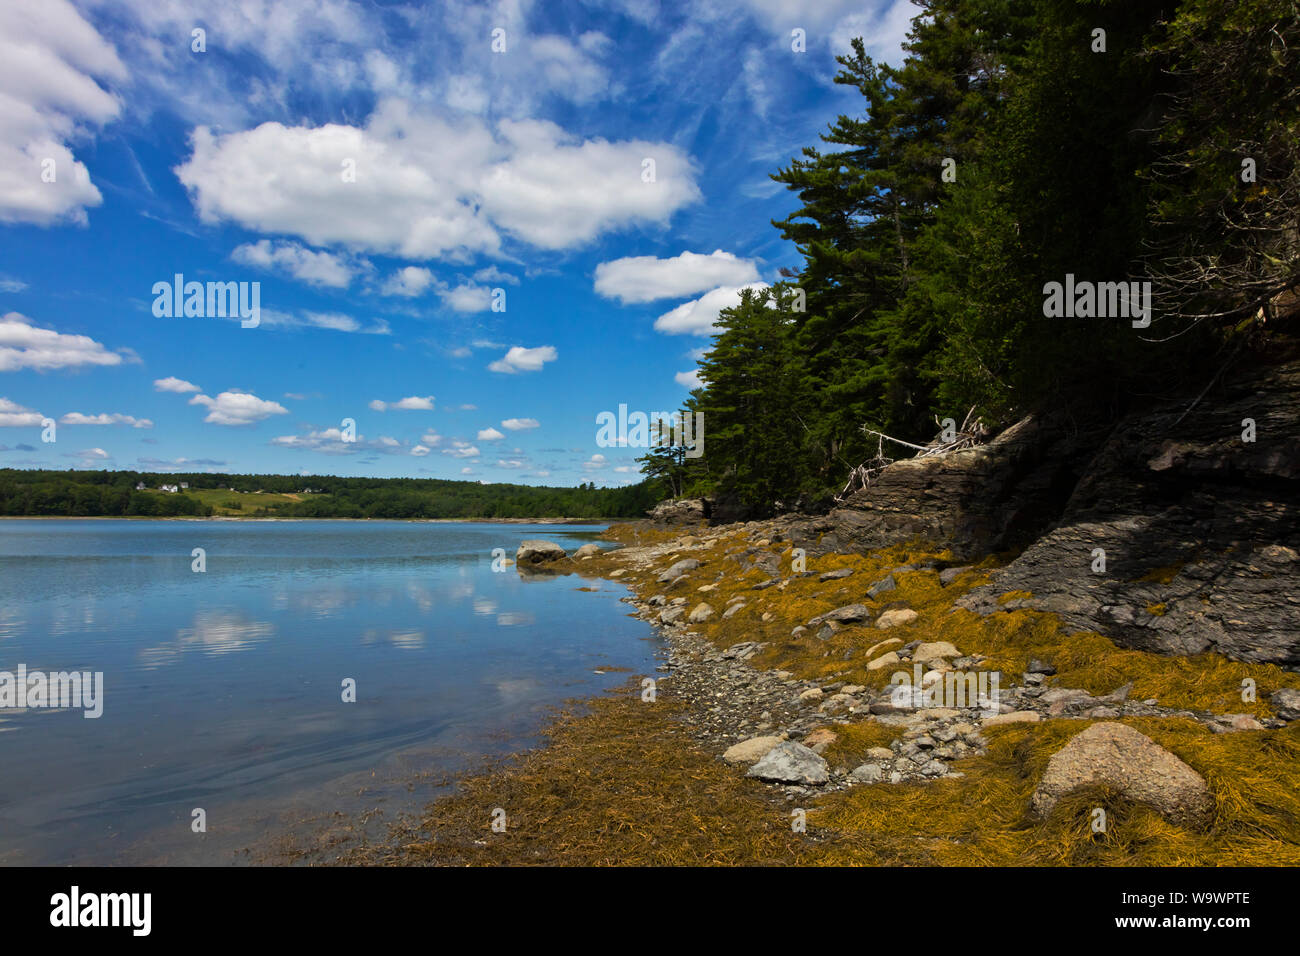 Y los bosques de algas en la marea baja en Blue Hill BAY - Maine Foto de stock